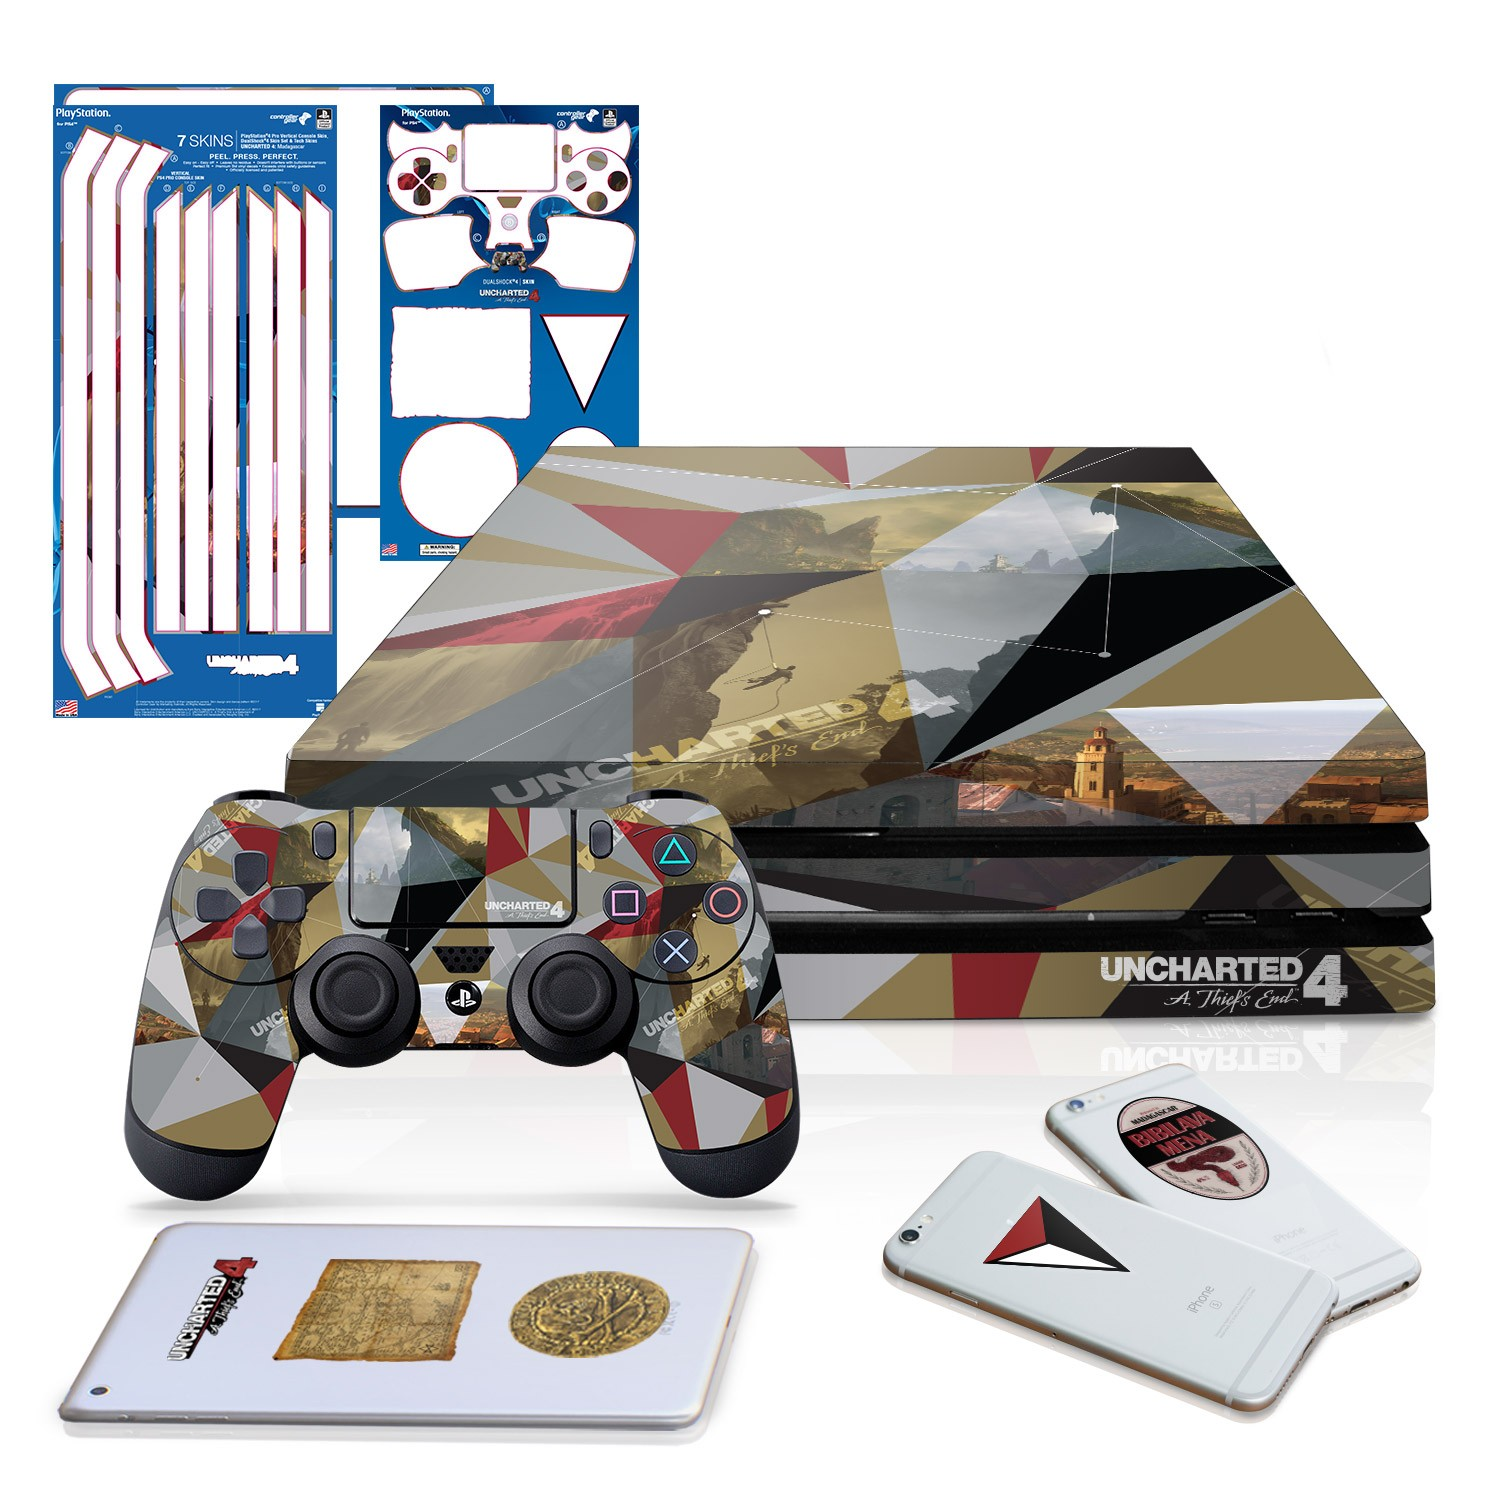 Uncharted 4 Madagascar - PS4 Pro - Horizontal Console and Controller Gaming Skin Pack - Officially Licensed by PlayStation